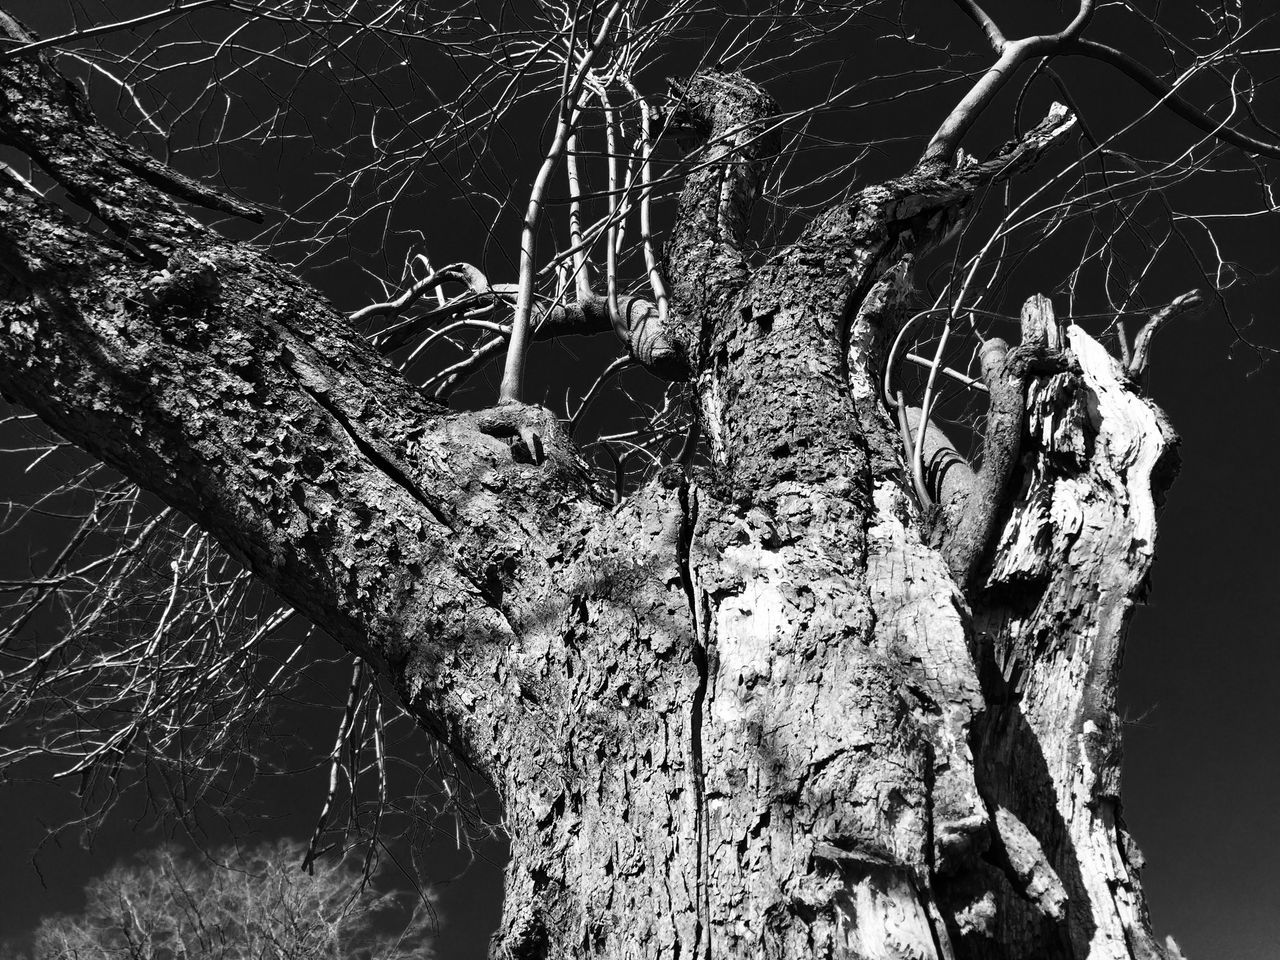 tree, tree trunk, no people, branch, outdoors, textured, day, close-up, nature, dead plant, wood - material, dried plant, dead tree, animals in the wild, animal themes